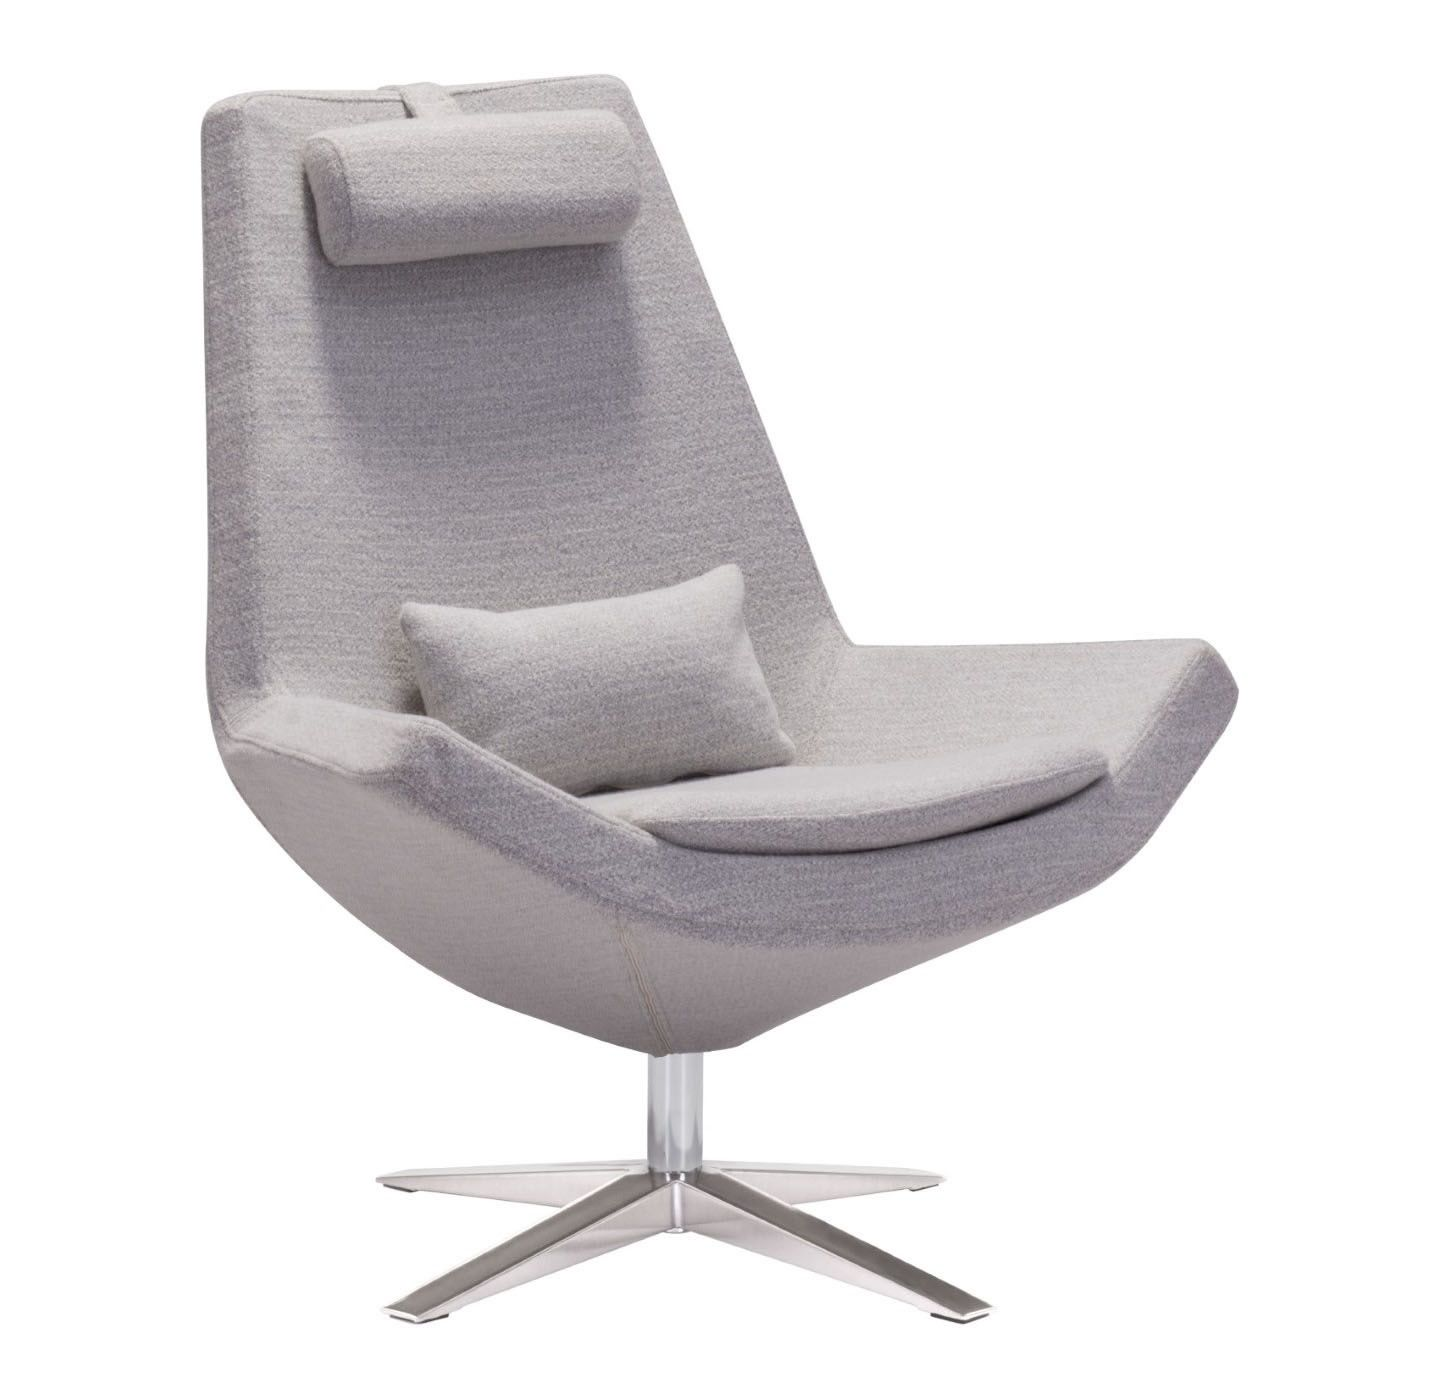 Schonbezug Sessel Lounge Kuscheln Lounge Chair Siesta Lounge Chair Dorm Room Lounge